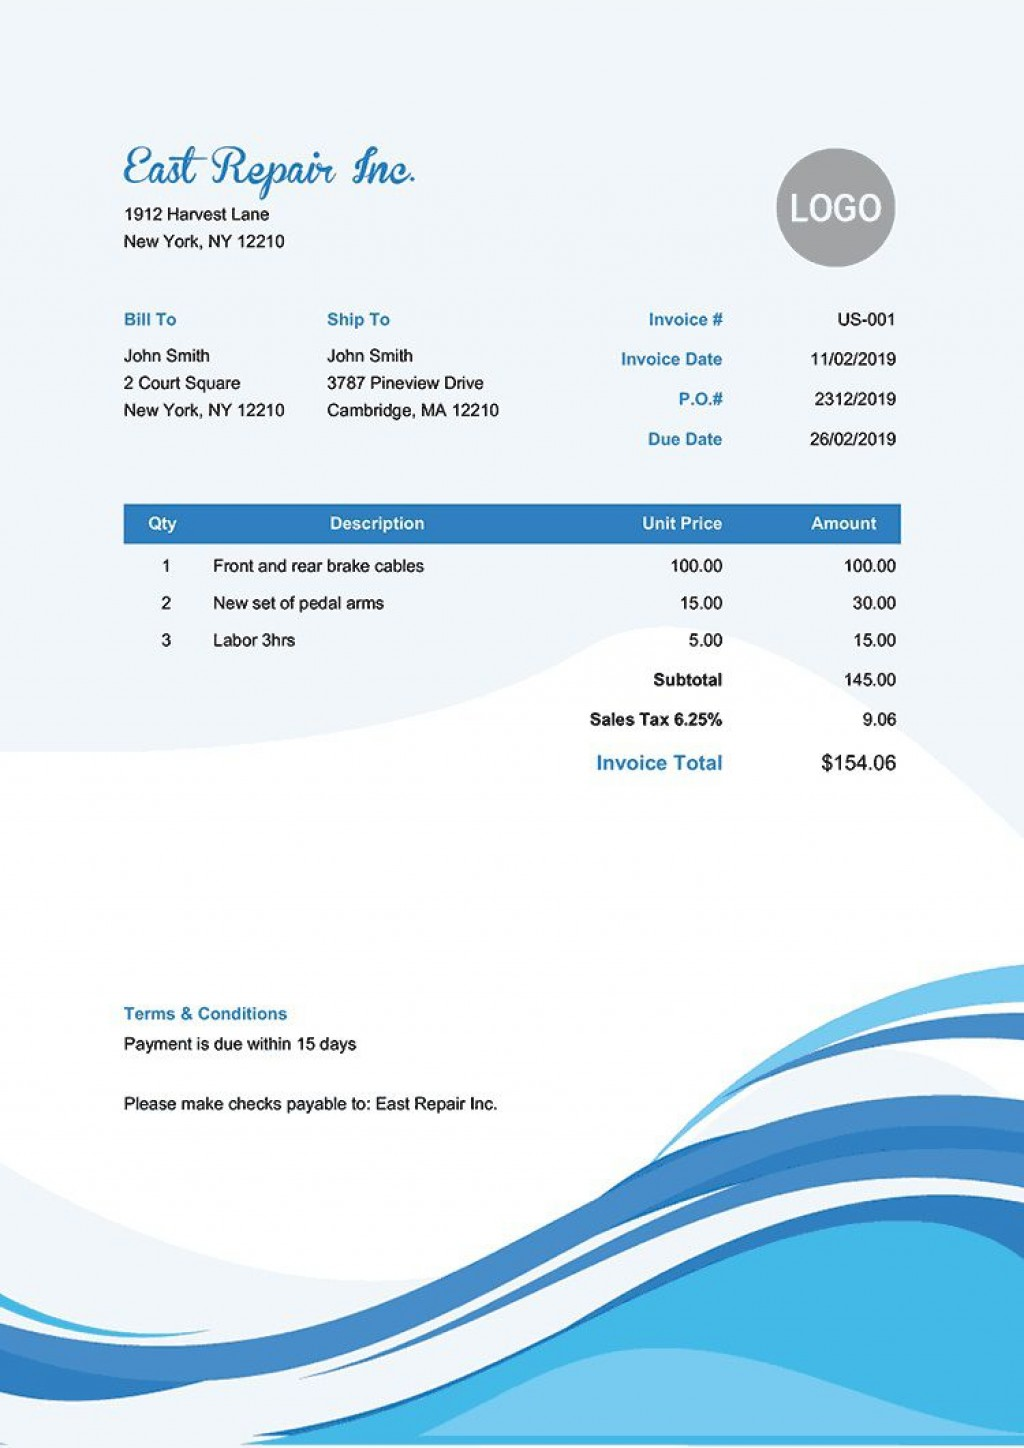 004 Fantastic Download Free Invoice Template High Def  Sale Uk Simple Excel Self EmployedLarge